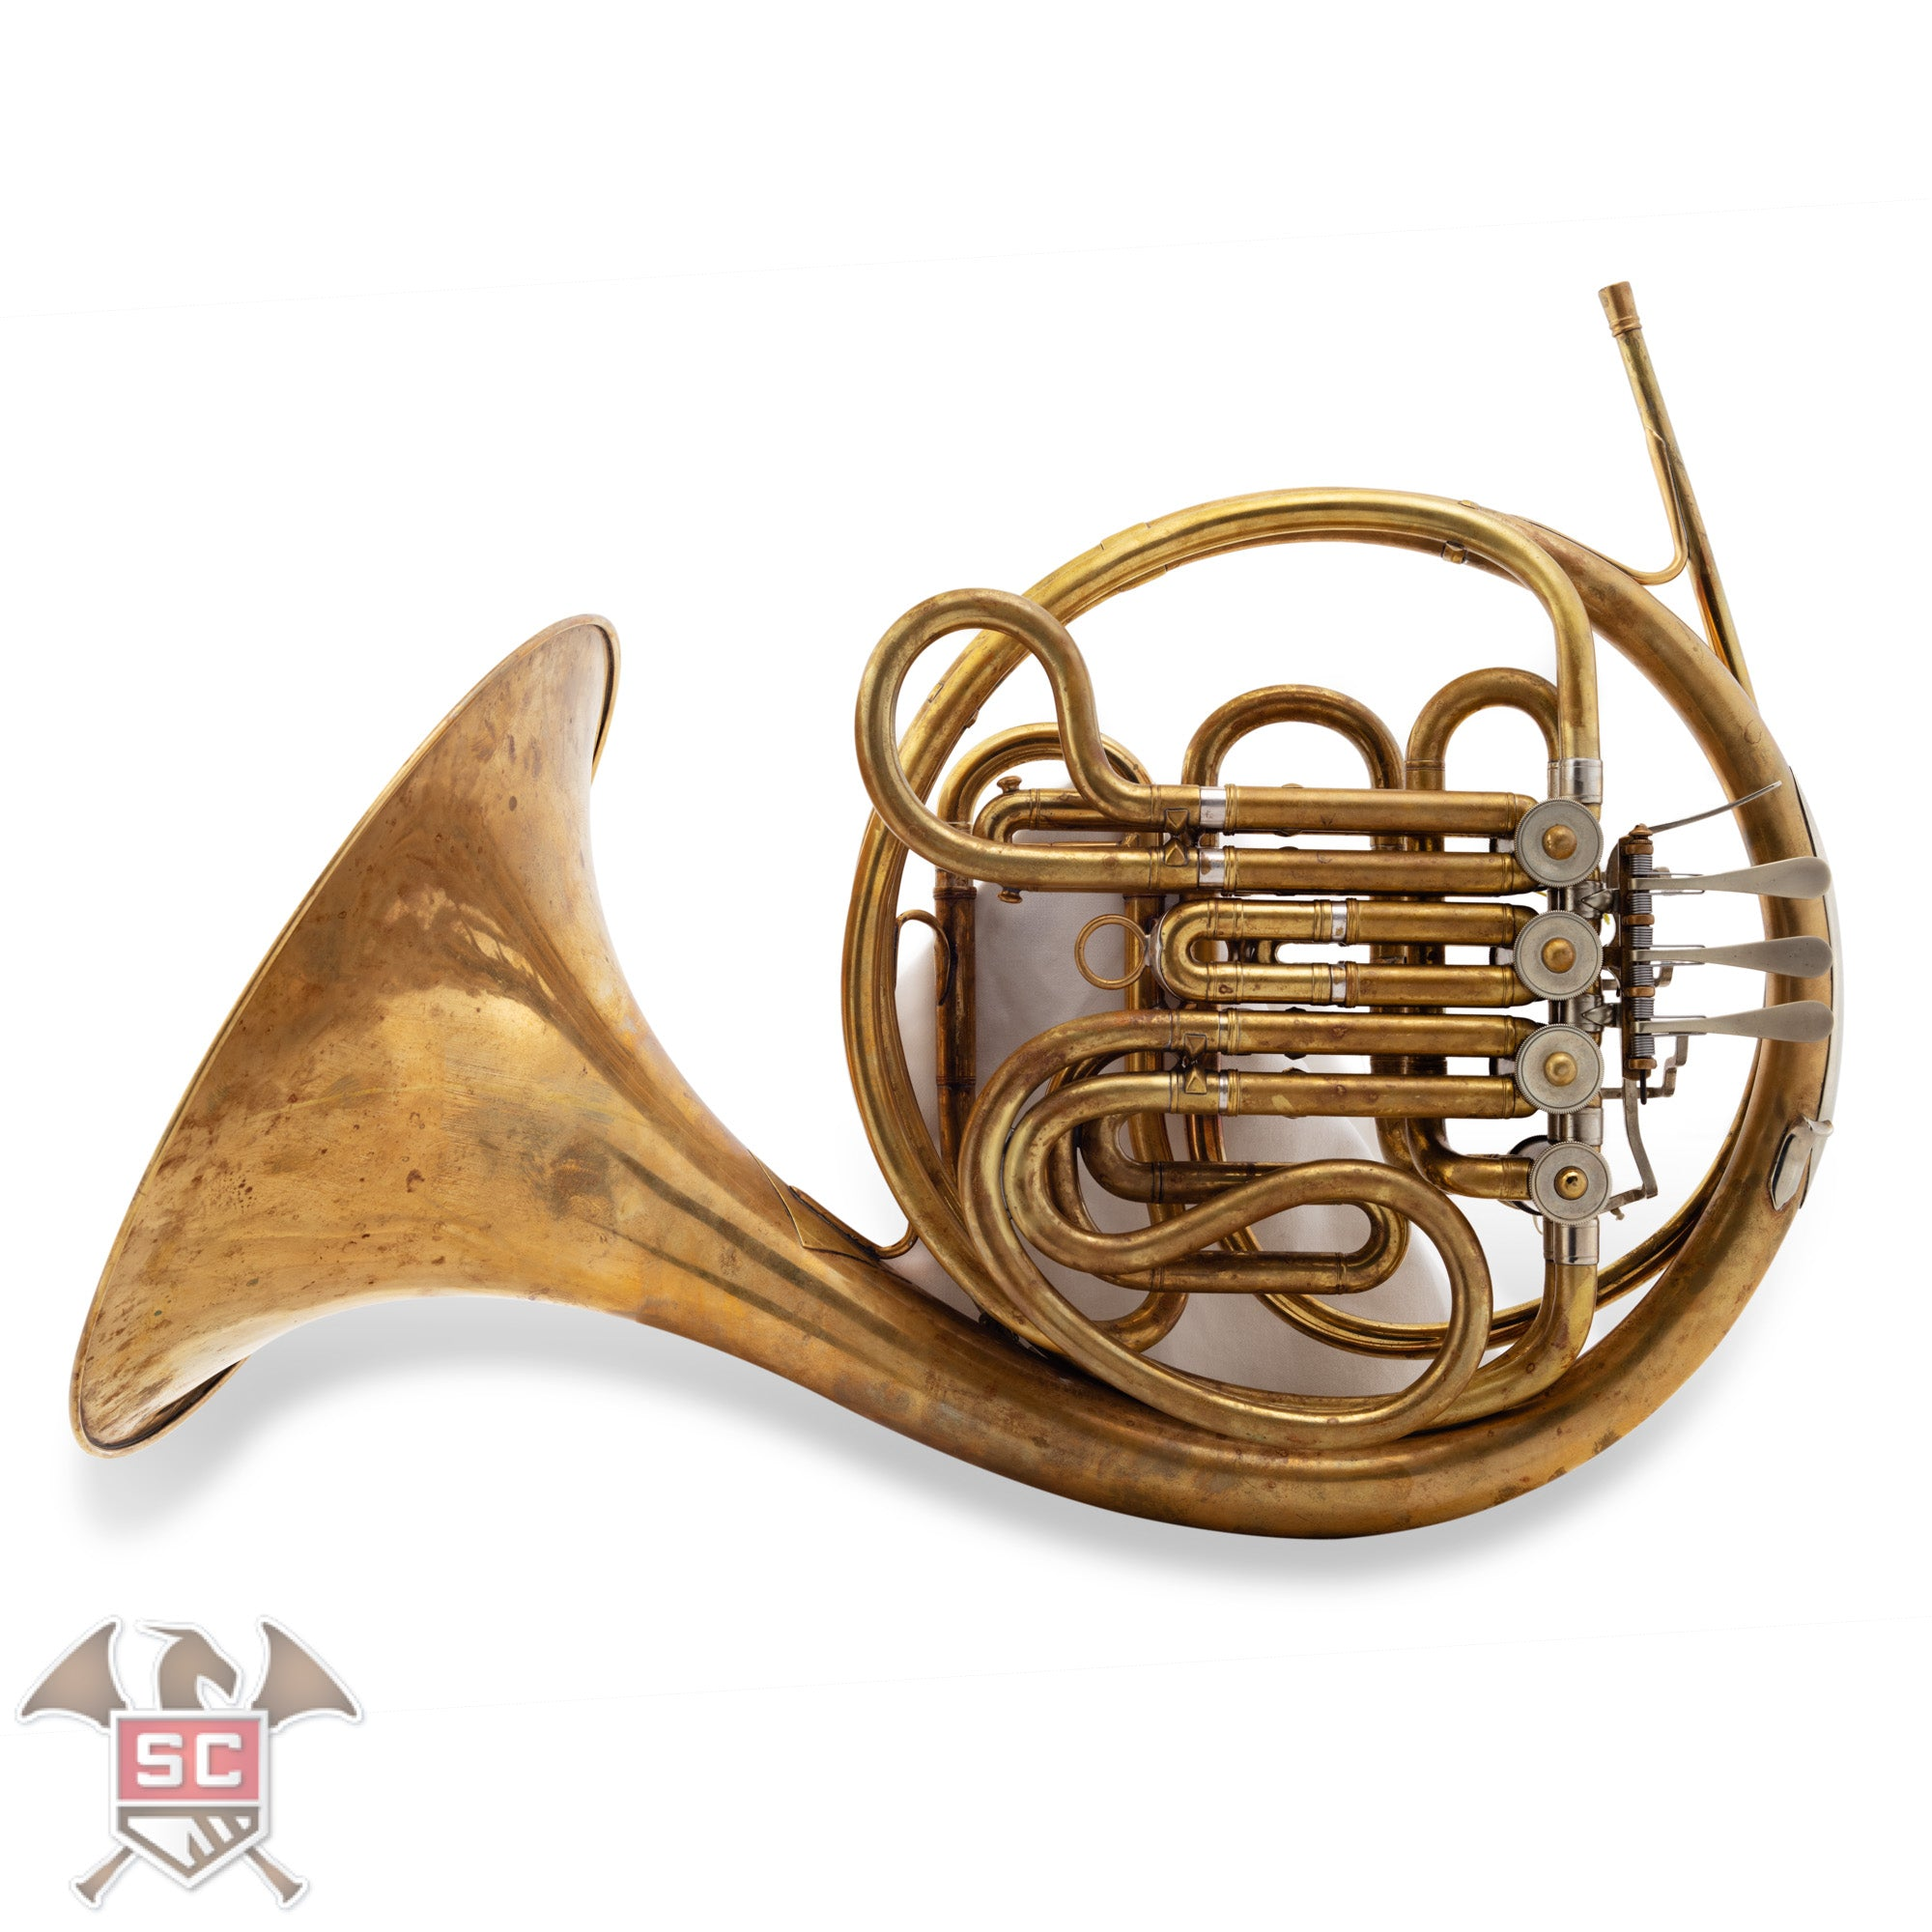 Original Carl Geyer Double French Horn